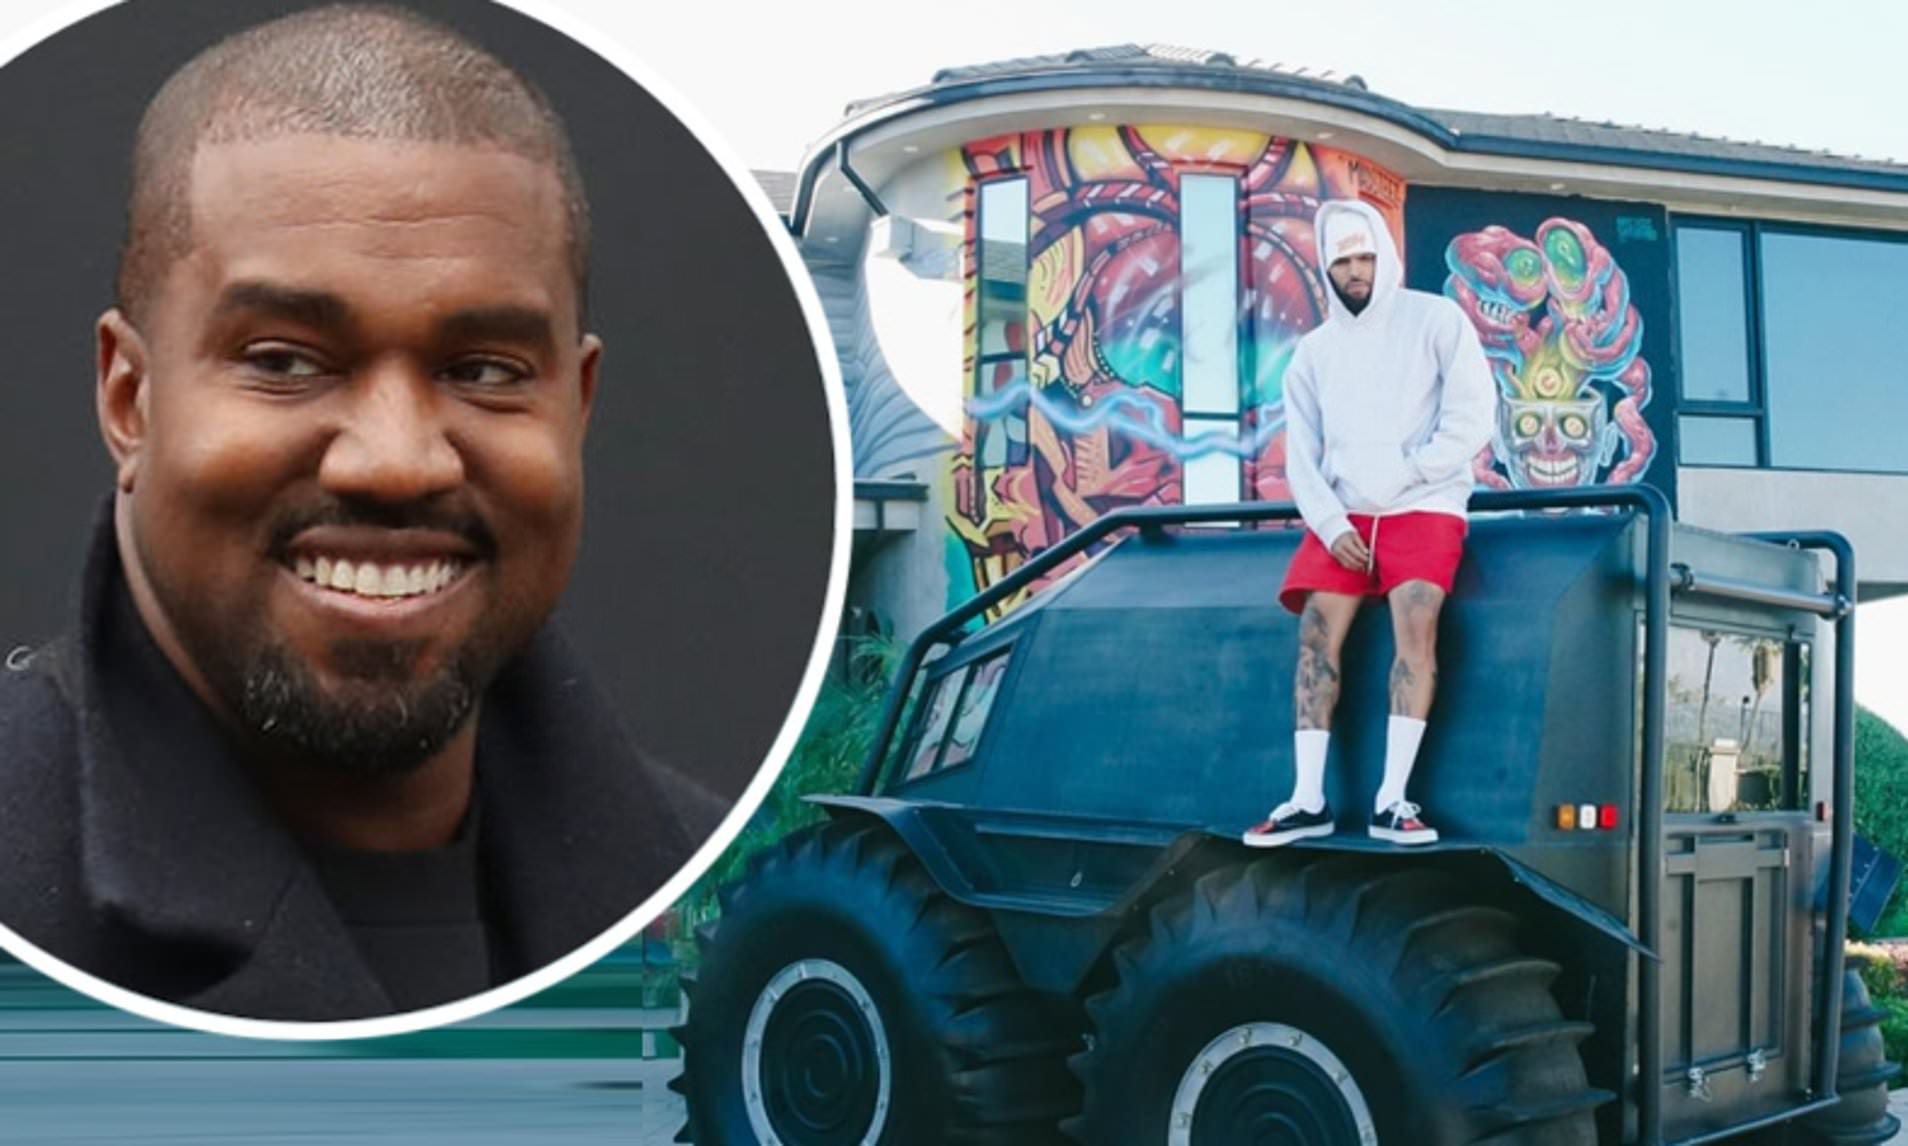 Kanye West Gifts Chris Brown A Massive YEEZY Truck